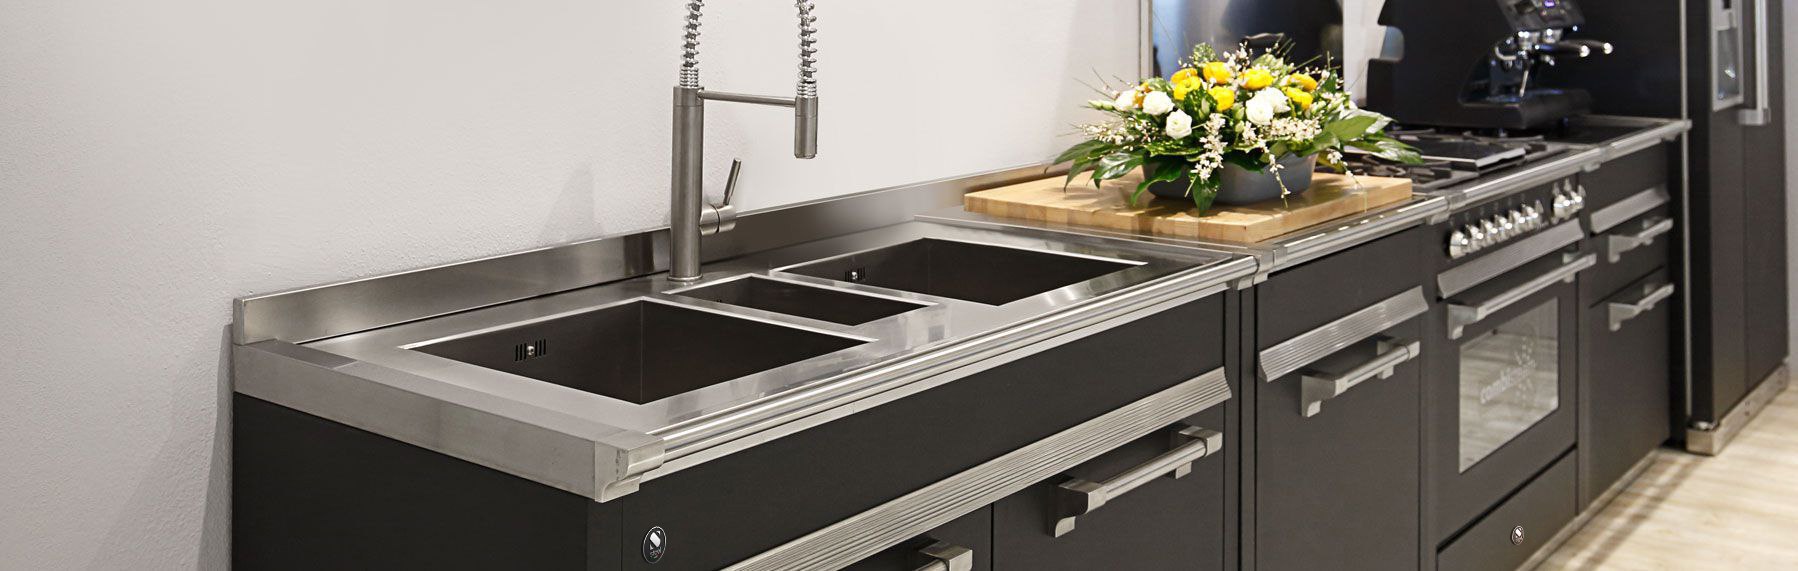 contacts ? steel cucine - Steel Cucine